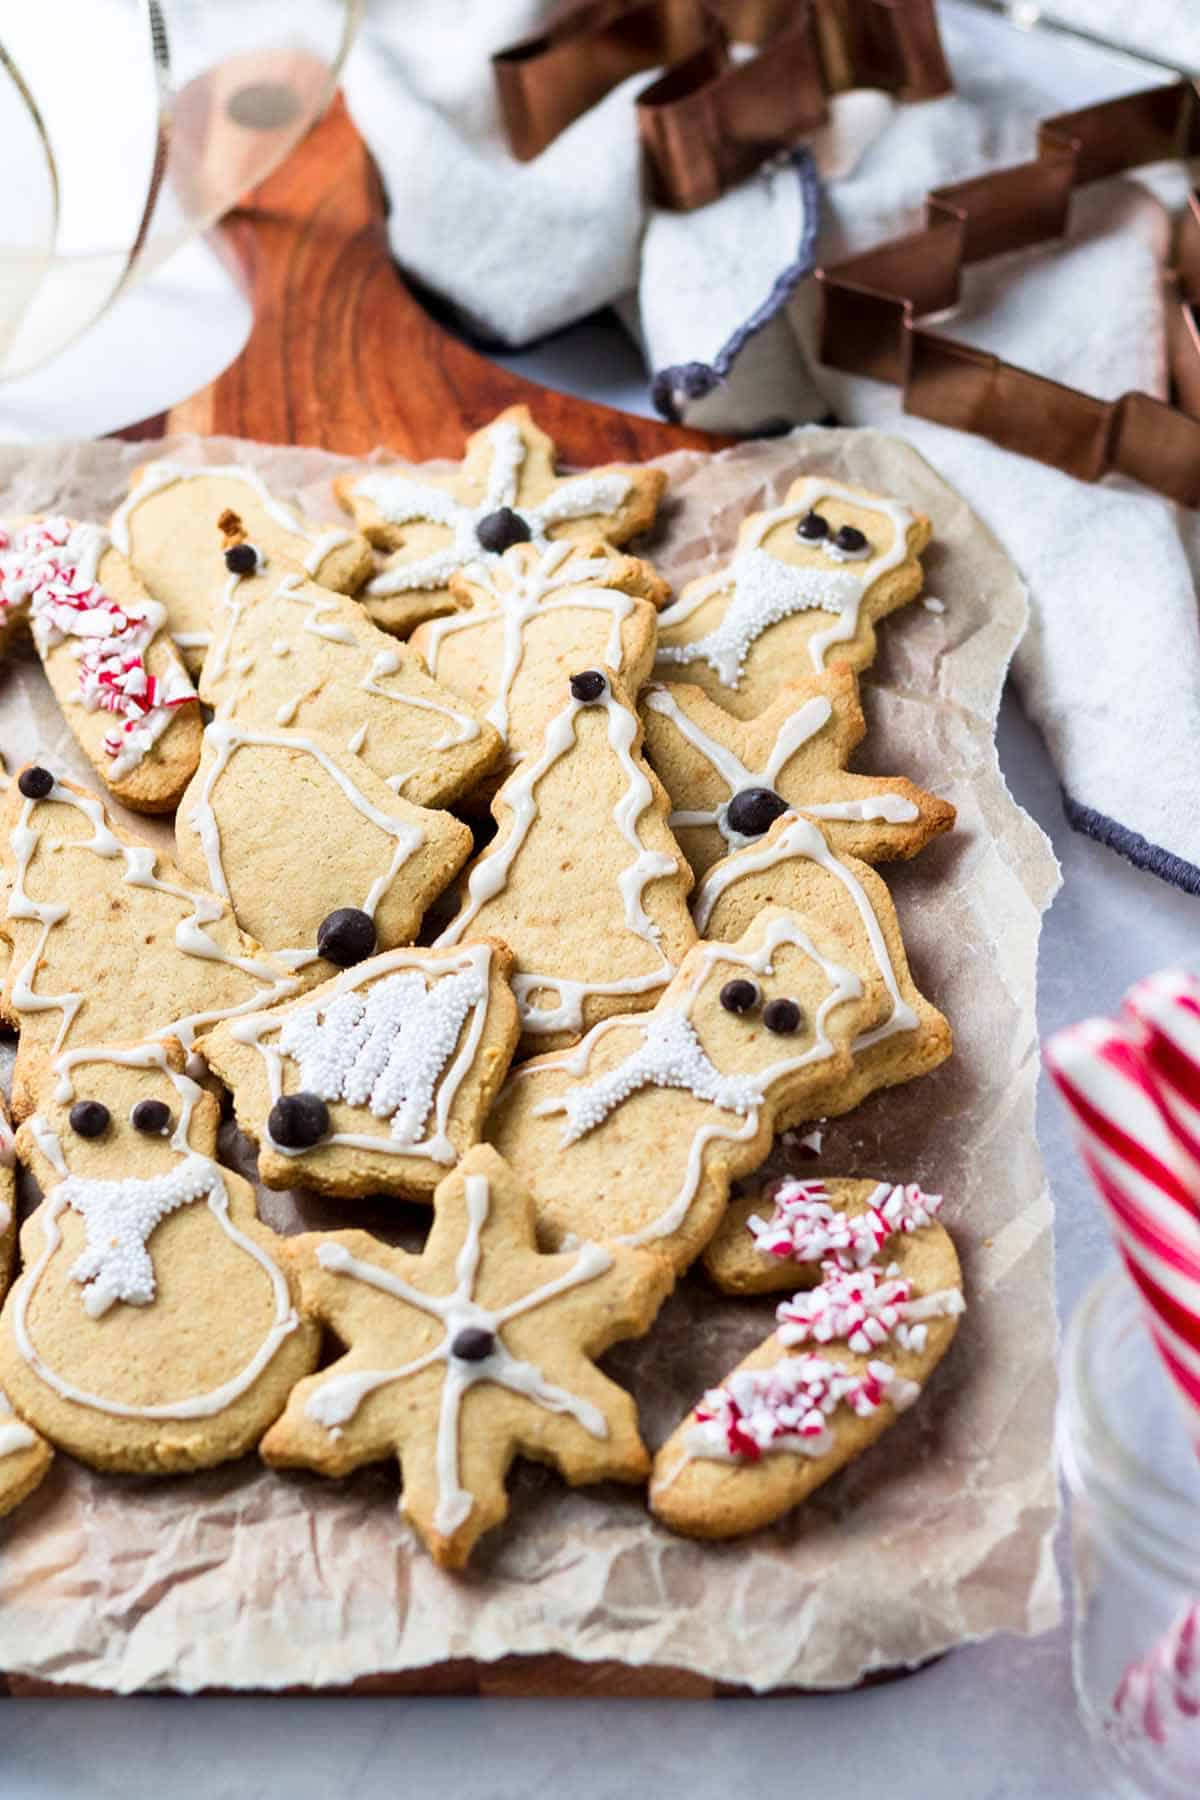 Several gluten free Christmas cookies sitting on parchment paper with Christmas cookie cutters and candy canes in the background.